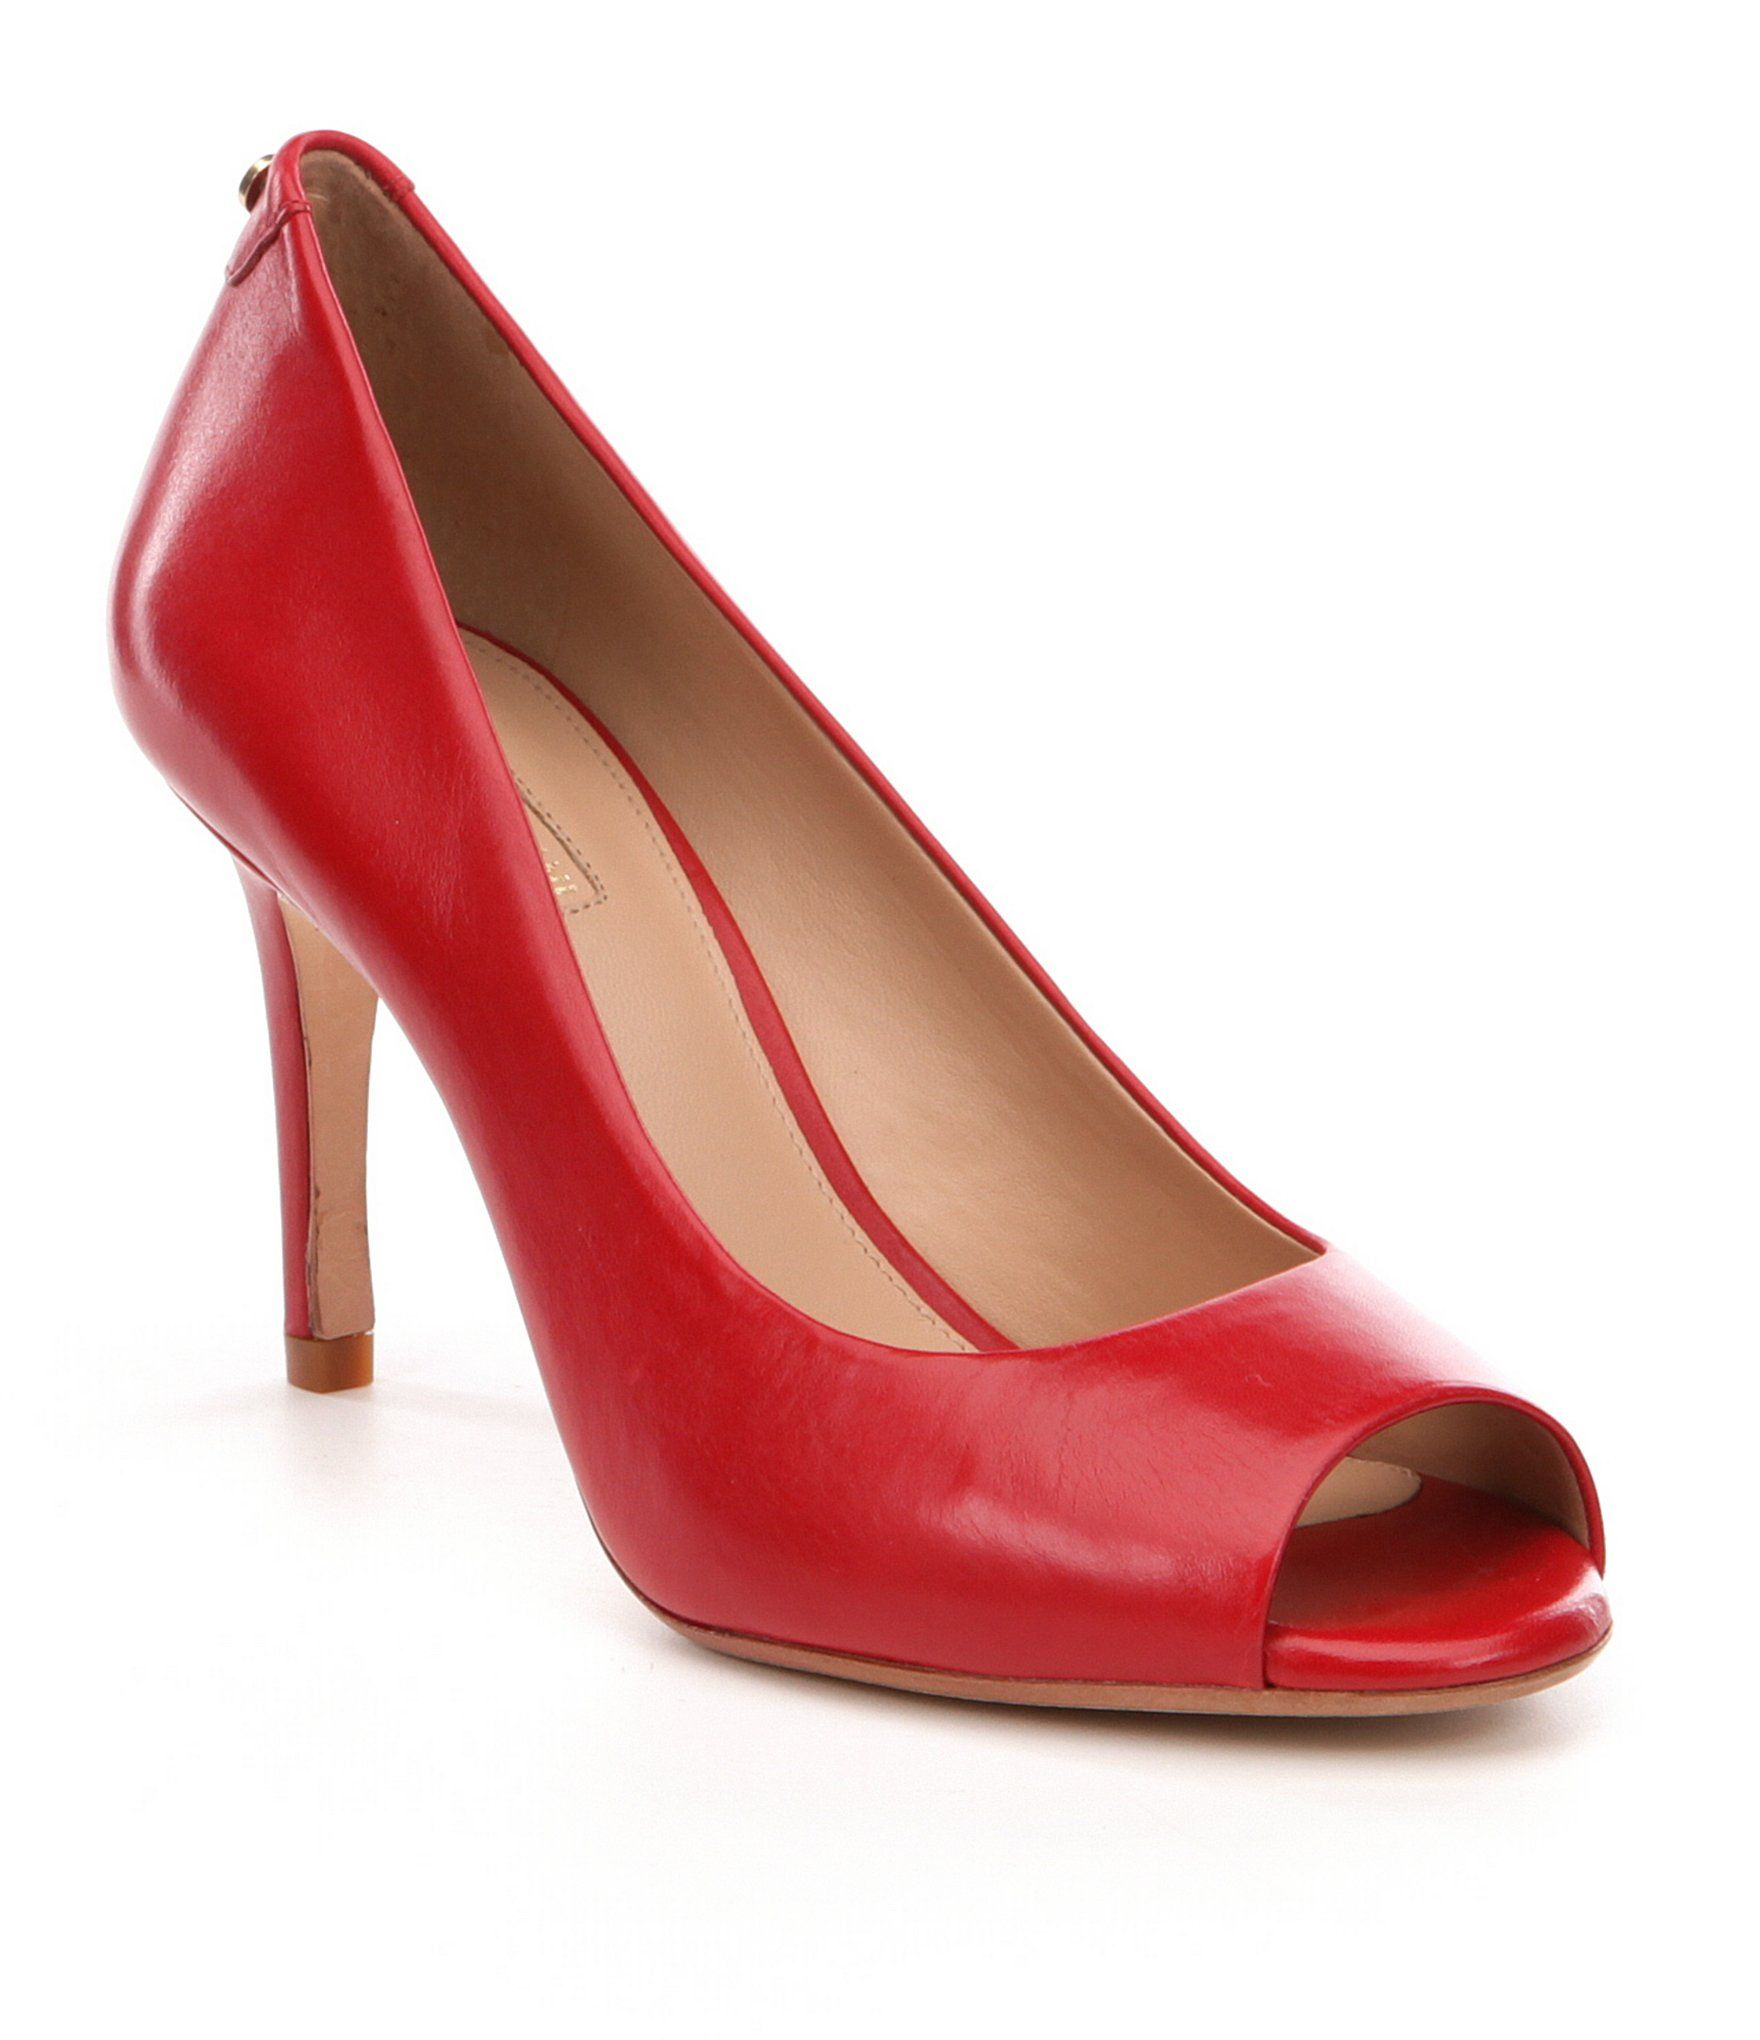 Rainah Leather Peep-Toe Pumps U2xFQq